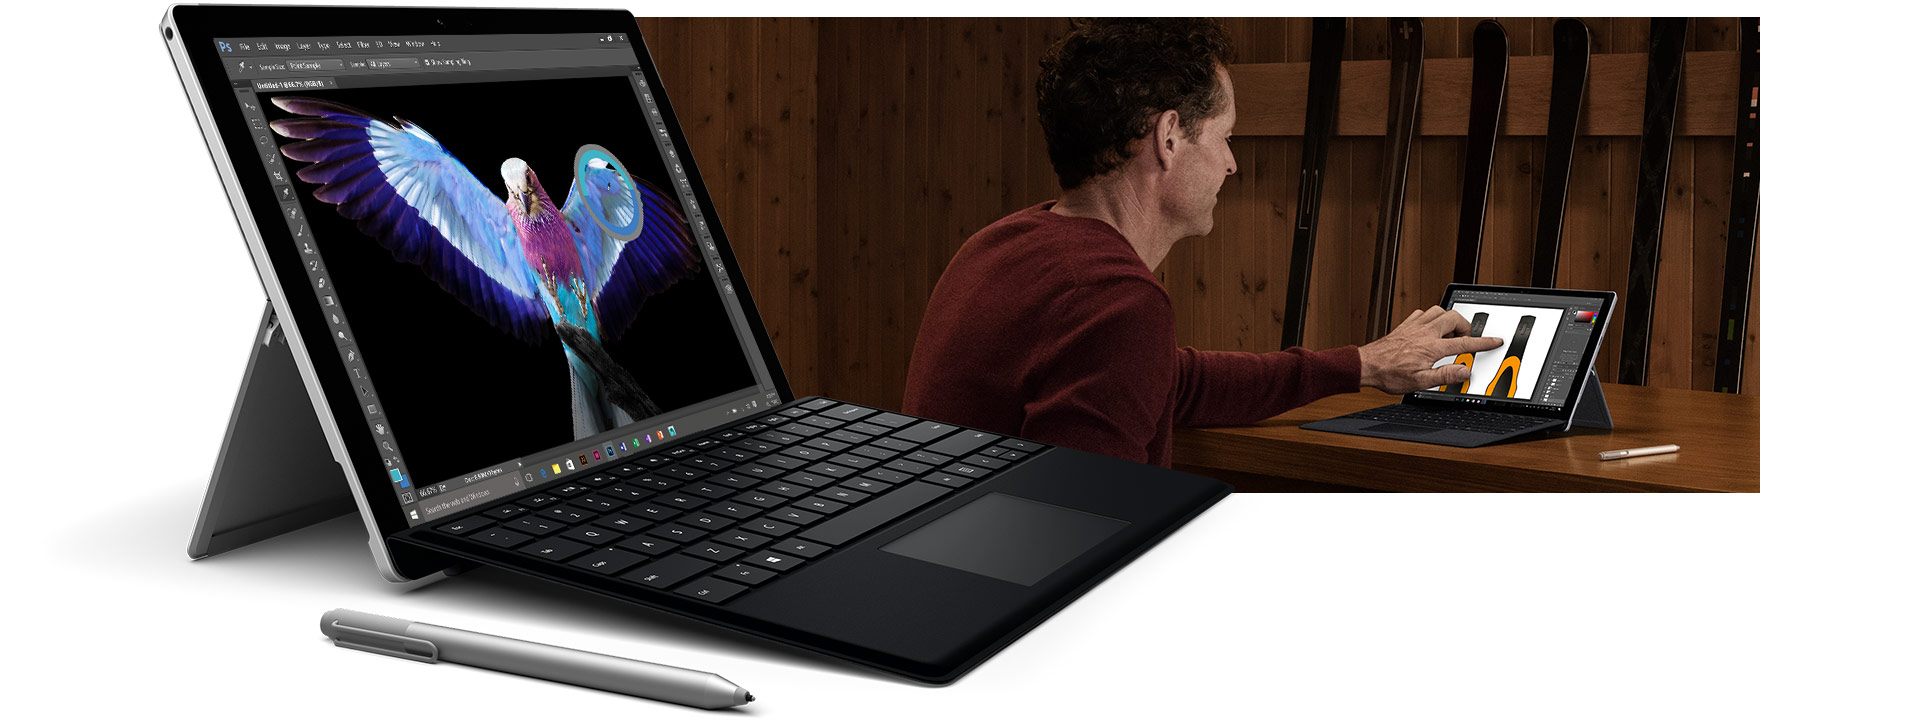 achetez la microsoft surface pro 4 utilisez la comme une tablette ou un ordinateur portable. Black Bedroom Furniture Sets. Home Design Ideas